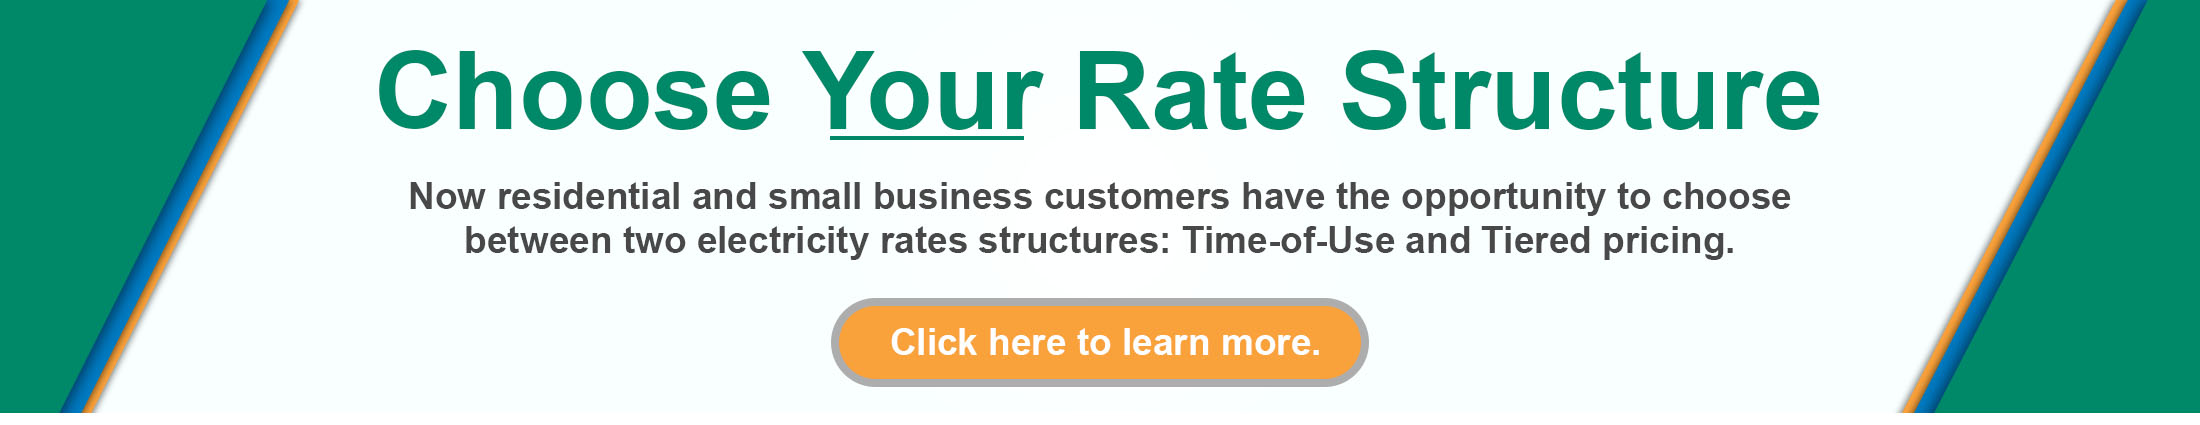 Choose your rate structure. Time-of-Use or Tiered Rates